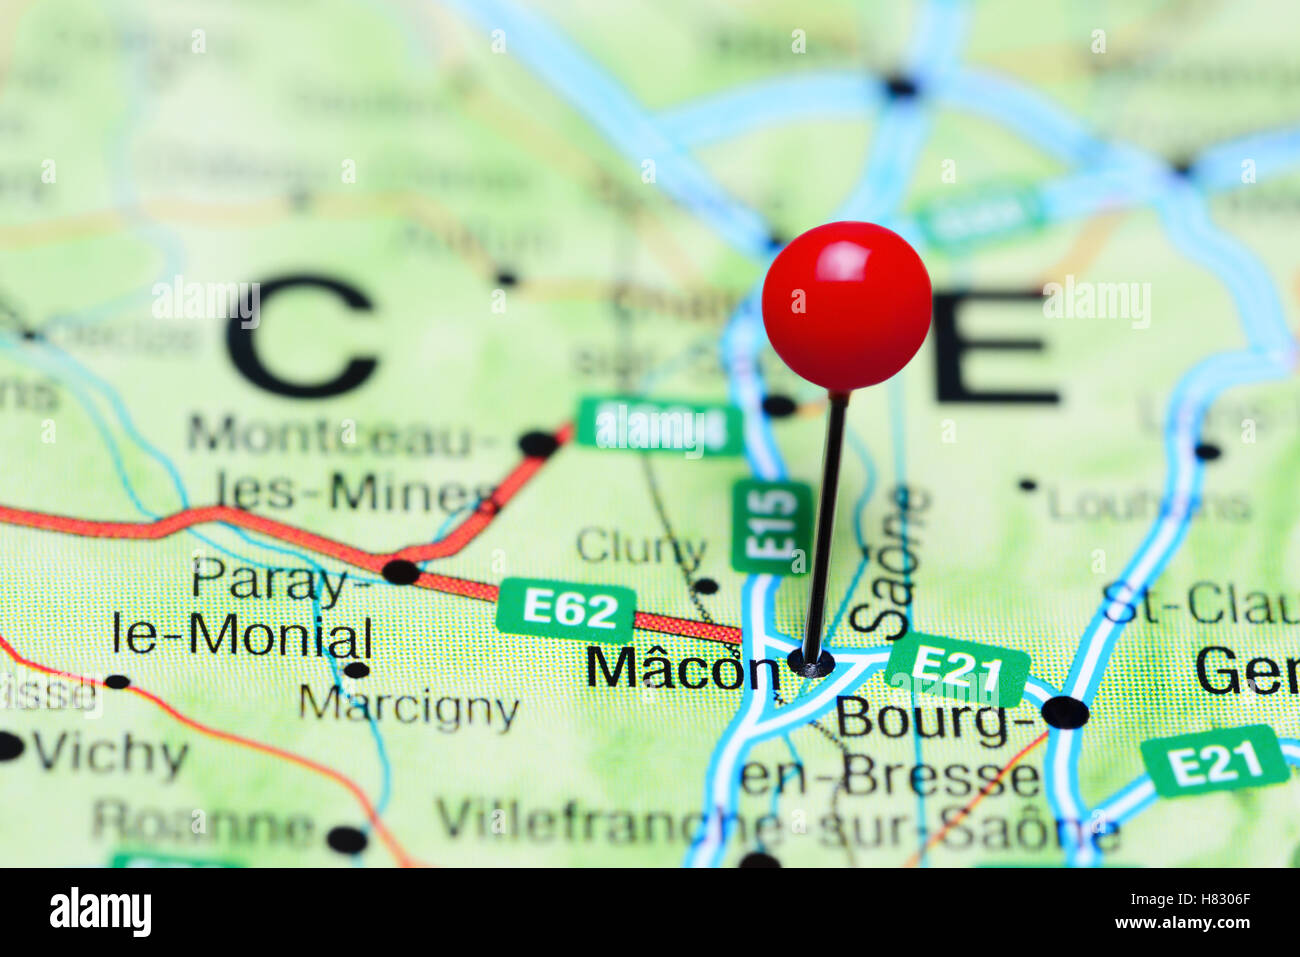 Macon France Map.Macon Pinned On A Map Of France Stock Photo 125455863 Alamy